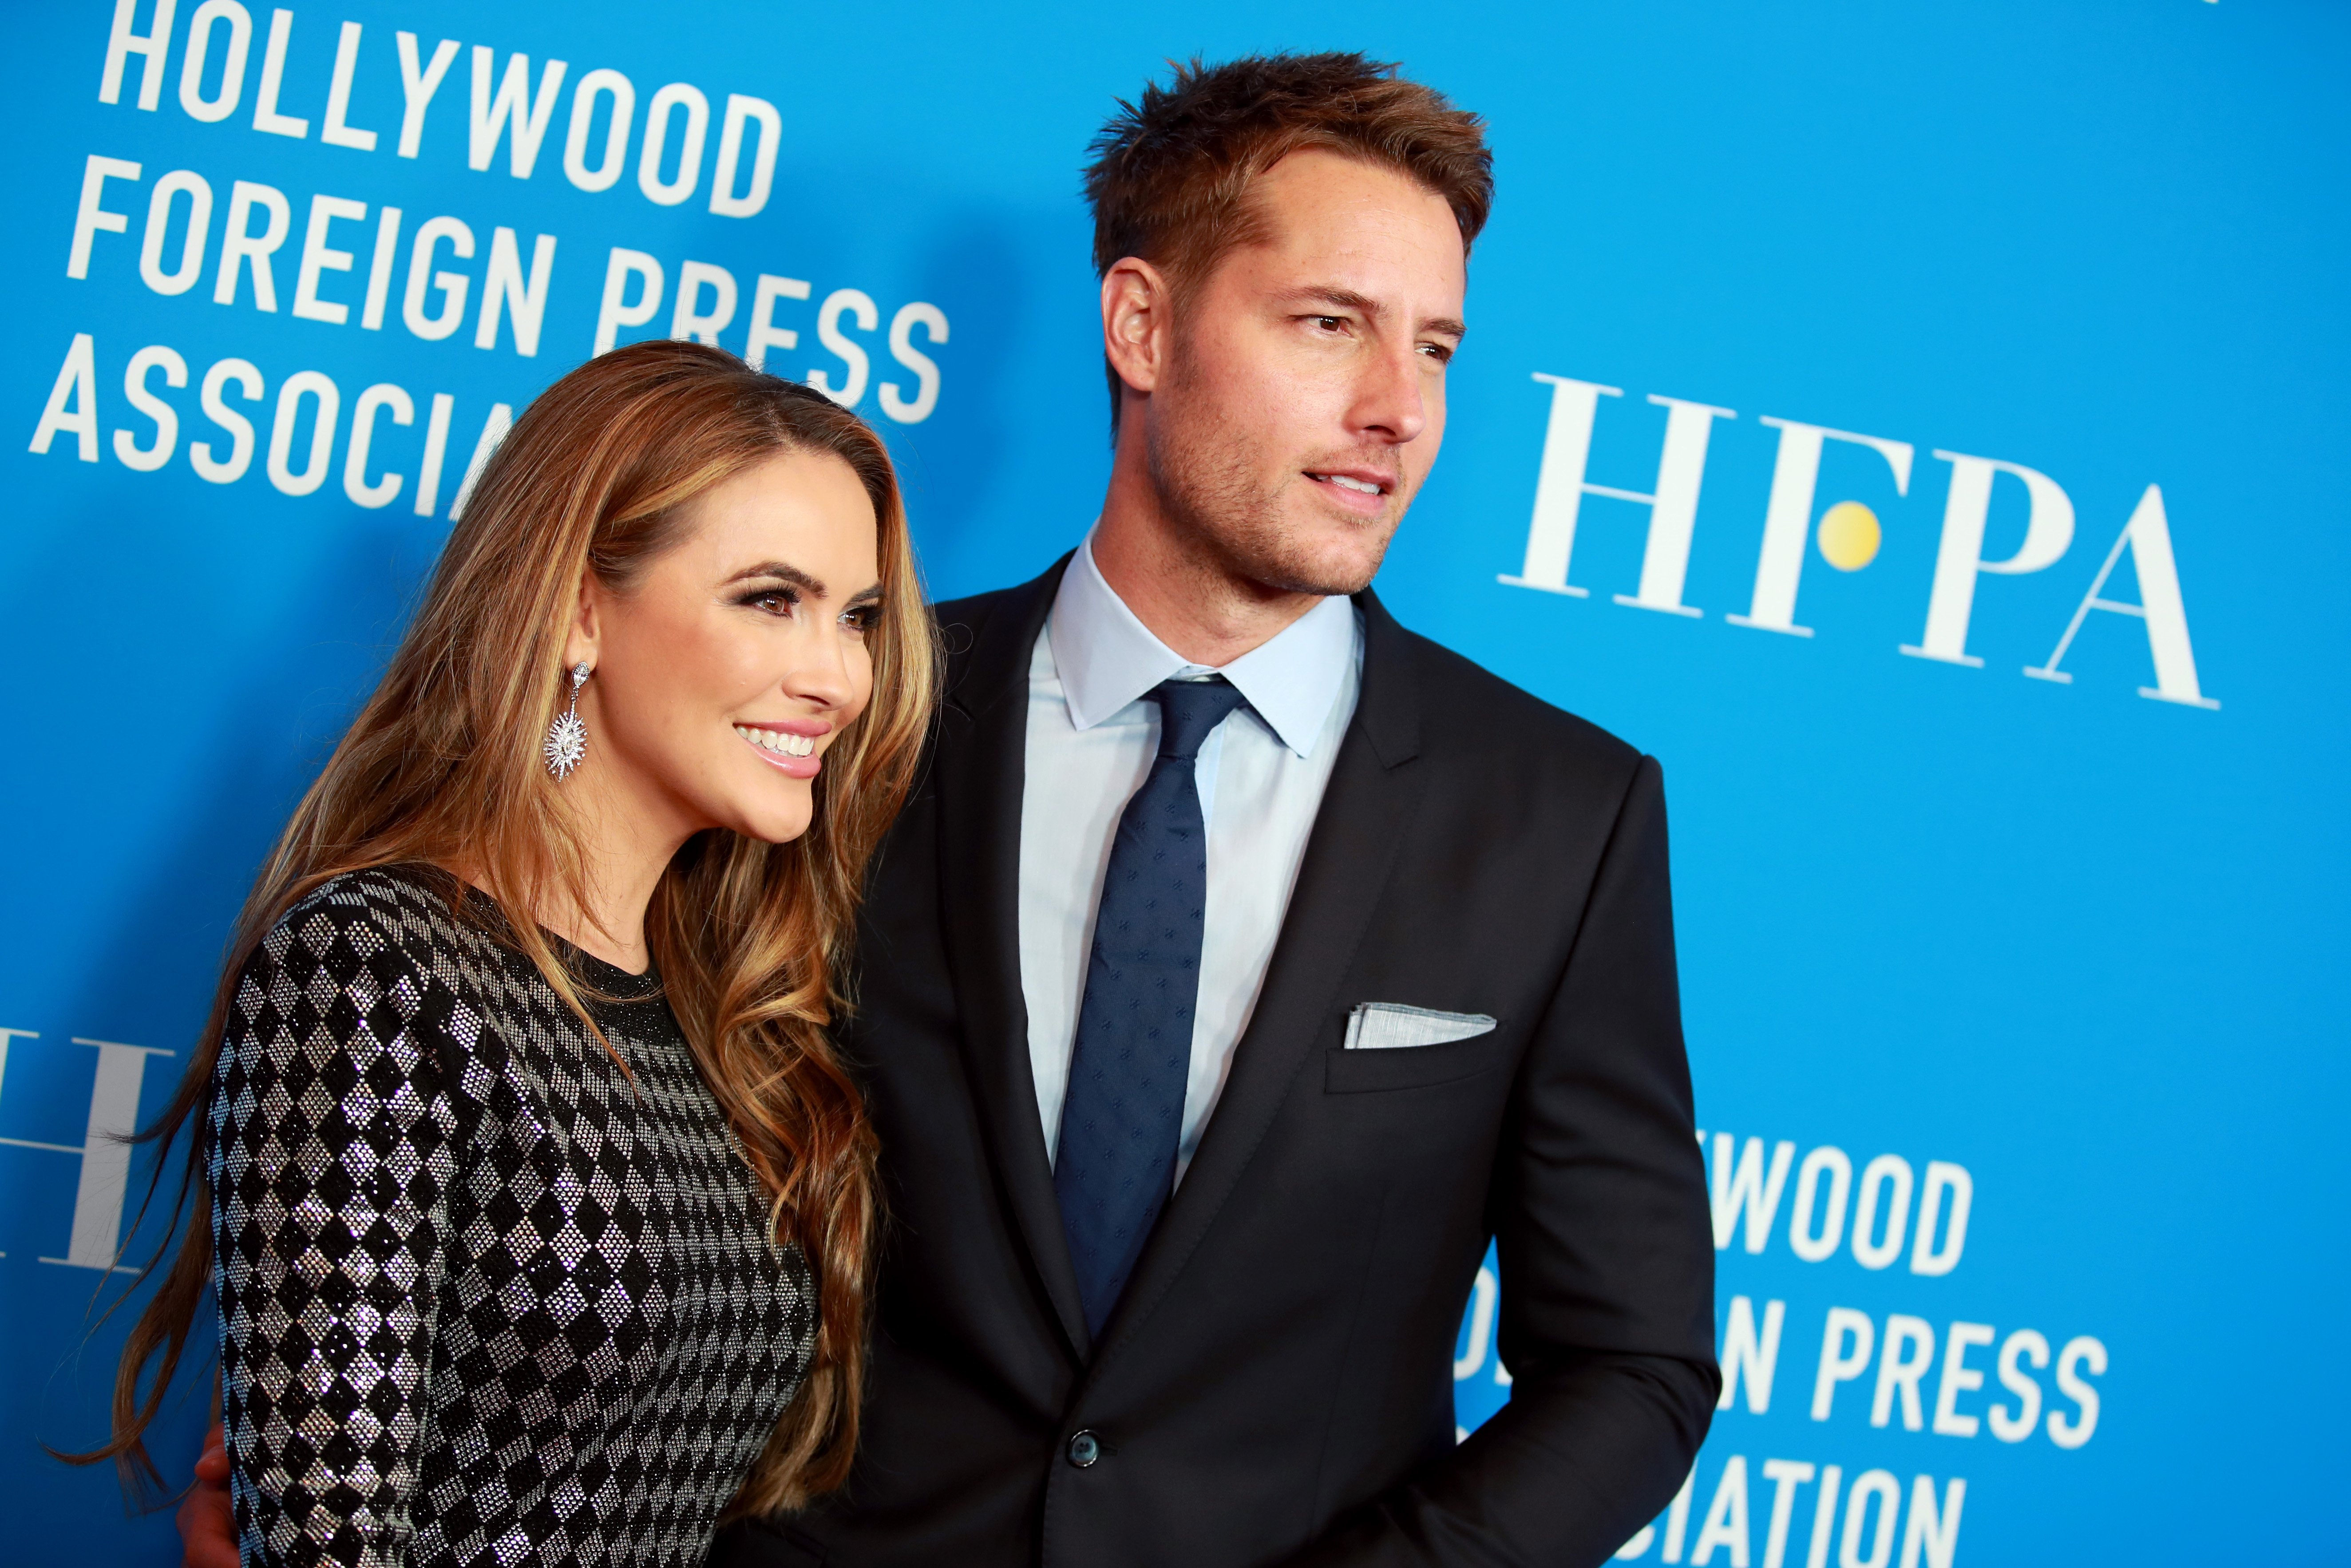 Chrishell Hartley and Justin Hartley attend the Hollywood Foreign Press Association's Annual Grants Banquet at Regent Beverly Wilshire Hotel on July 31, 2019, in Beverly Hills, California. | Source: Getty Images.